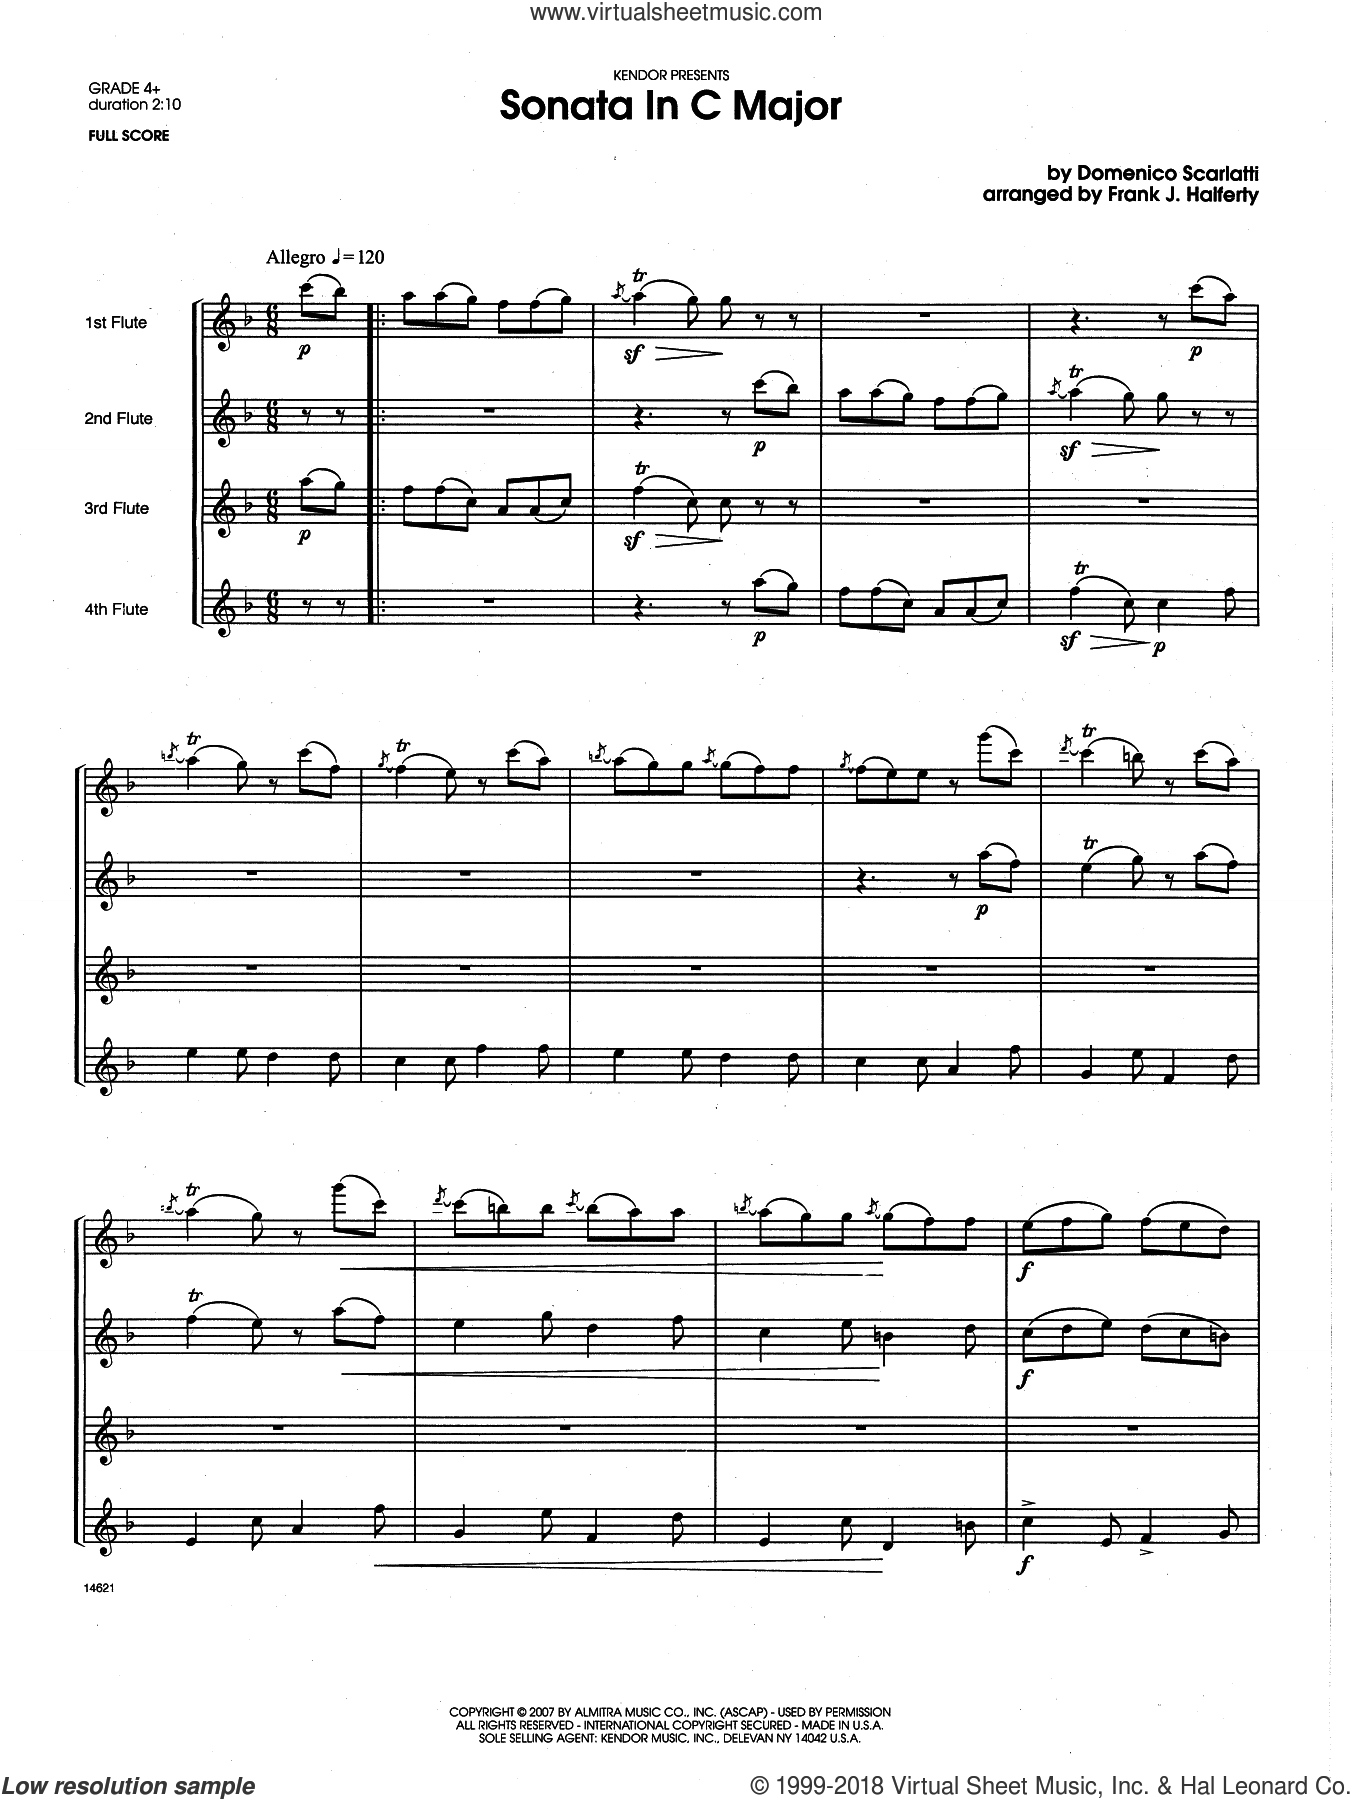 Sonata in C Major (COMPLETE) sheet music for flute quartet by Frank J. Halferty and Domenico Scarlatti, classical score, intermediate skill level